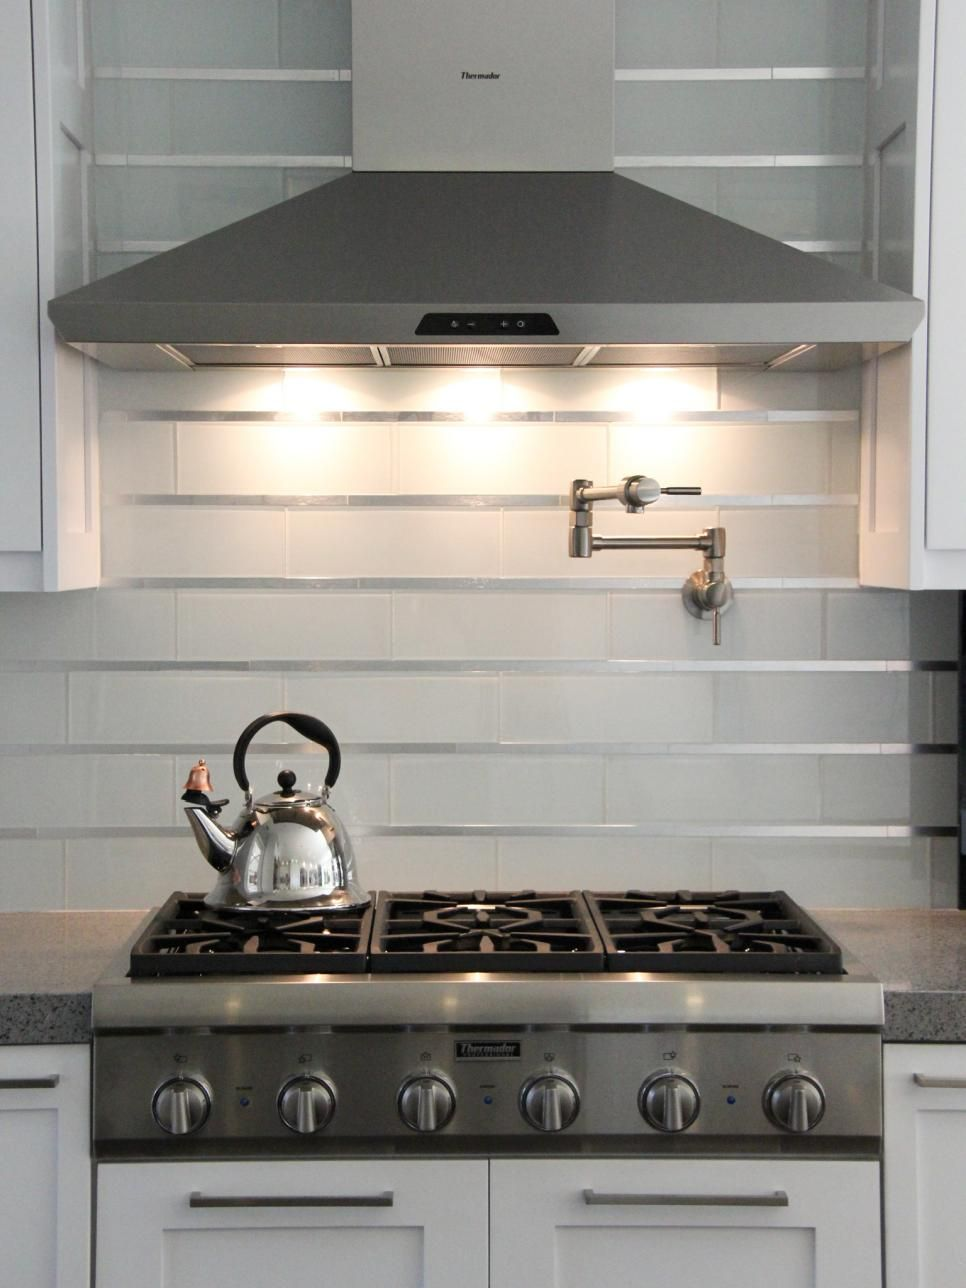 Wonderful Modern Backsplash Kitchen Ideas Part - 5: 20 Stainless Steel Kitchen Backsplashes | Kitchen Ideas U0026 Design With  Cabinets, Islands, Backsplashes